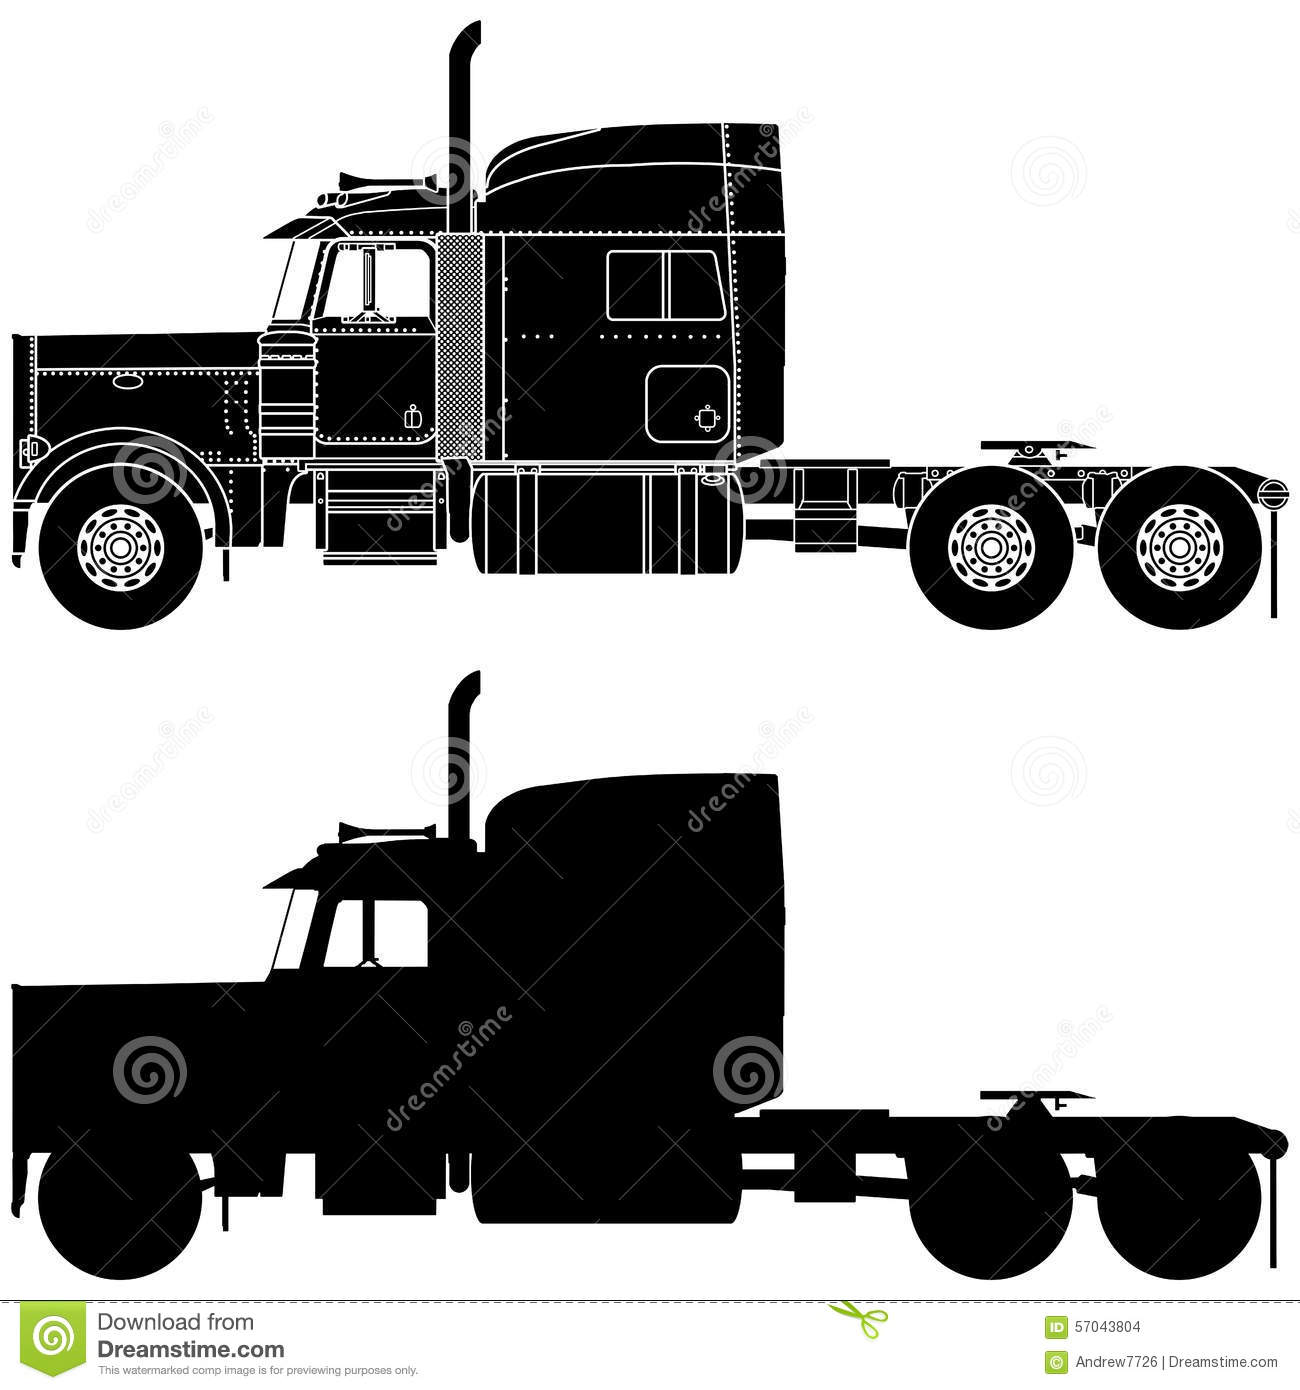 Watch also Watch likewise Shipping icon together with Luxury Rv furthermore Revell Prestige Auto Movers Peterbilt 359 Truck Transporter Trailer Model Kit. on semi truck travel trailers